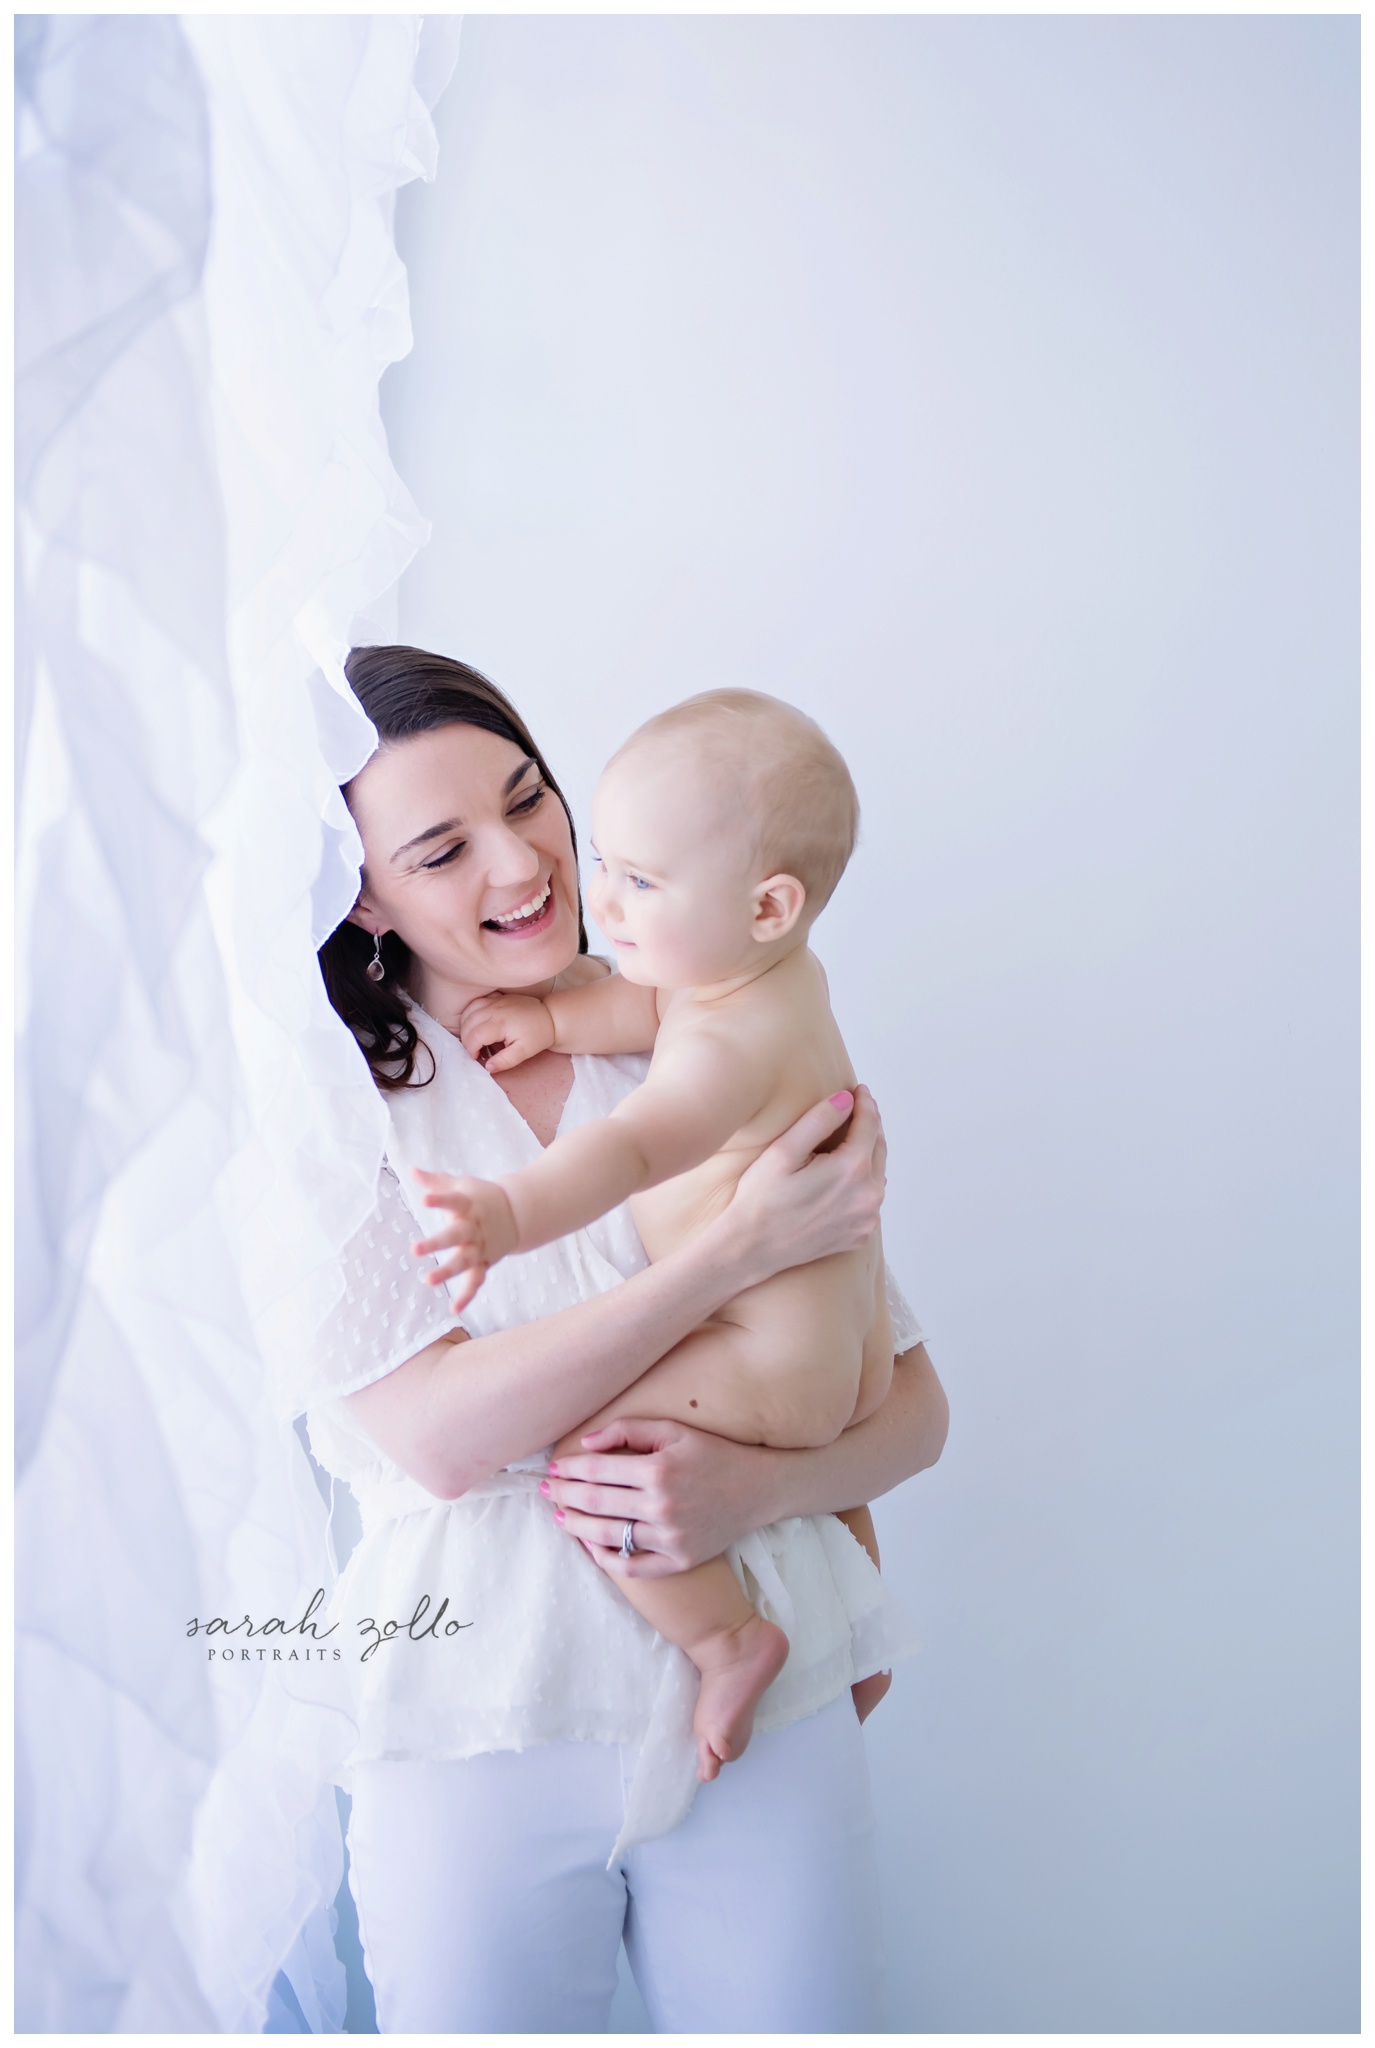 mommy and me mini session by sarah zollo, nicole starr photography